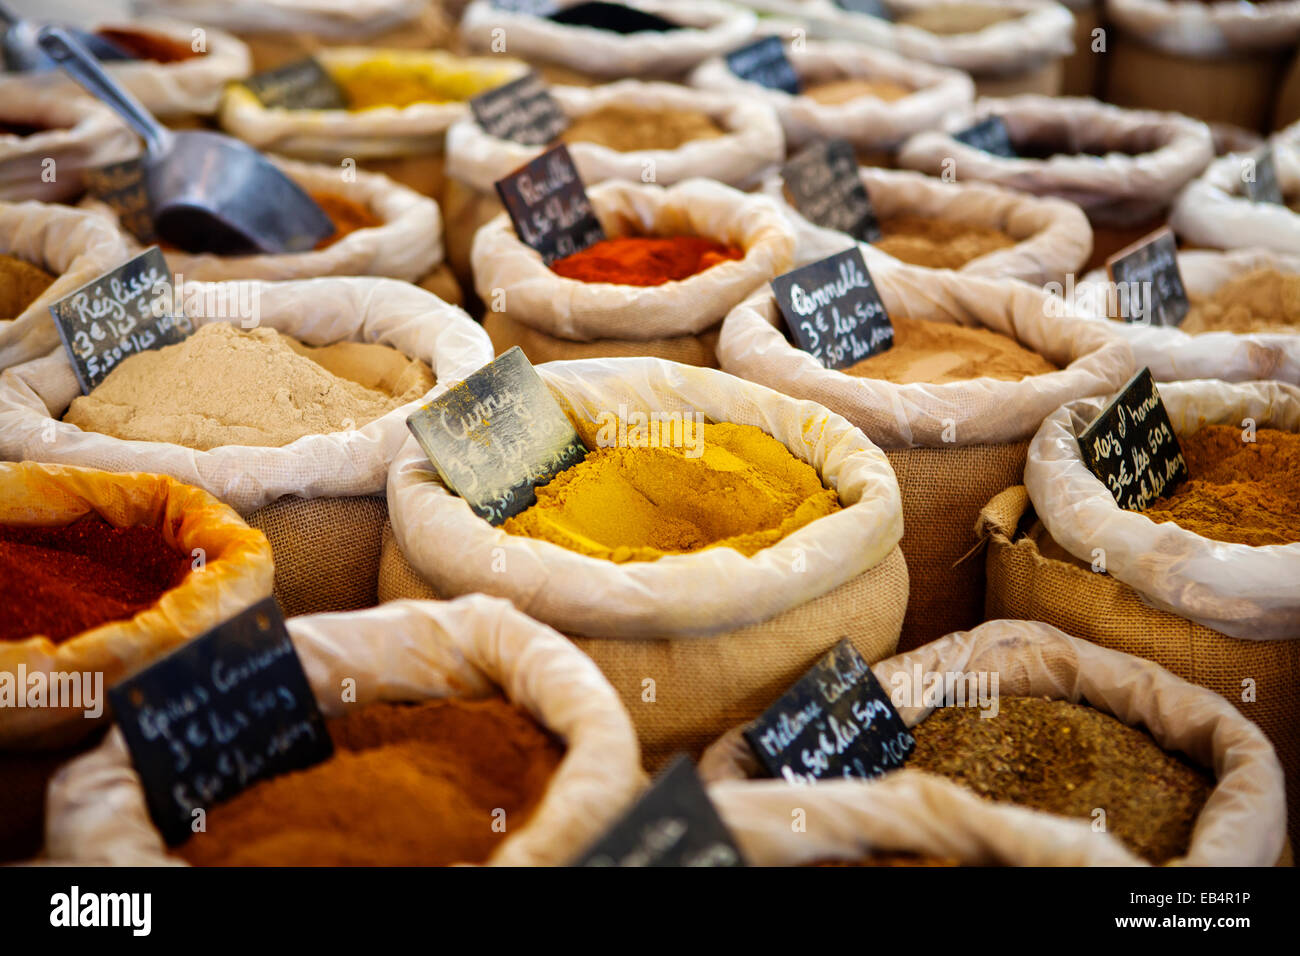 Spices on the market in Provence, France - Stock Image